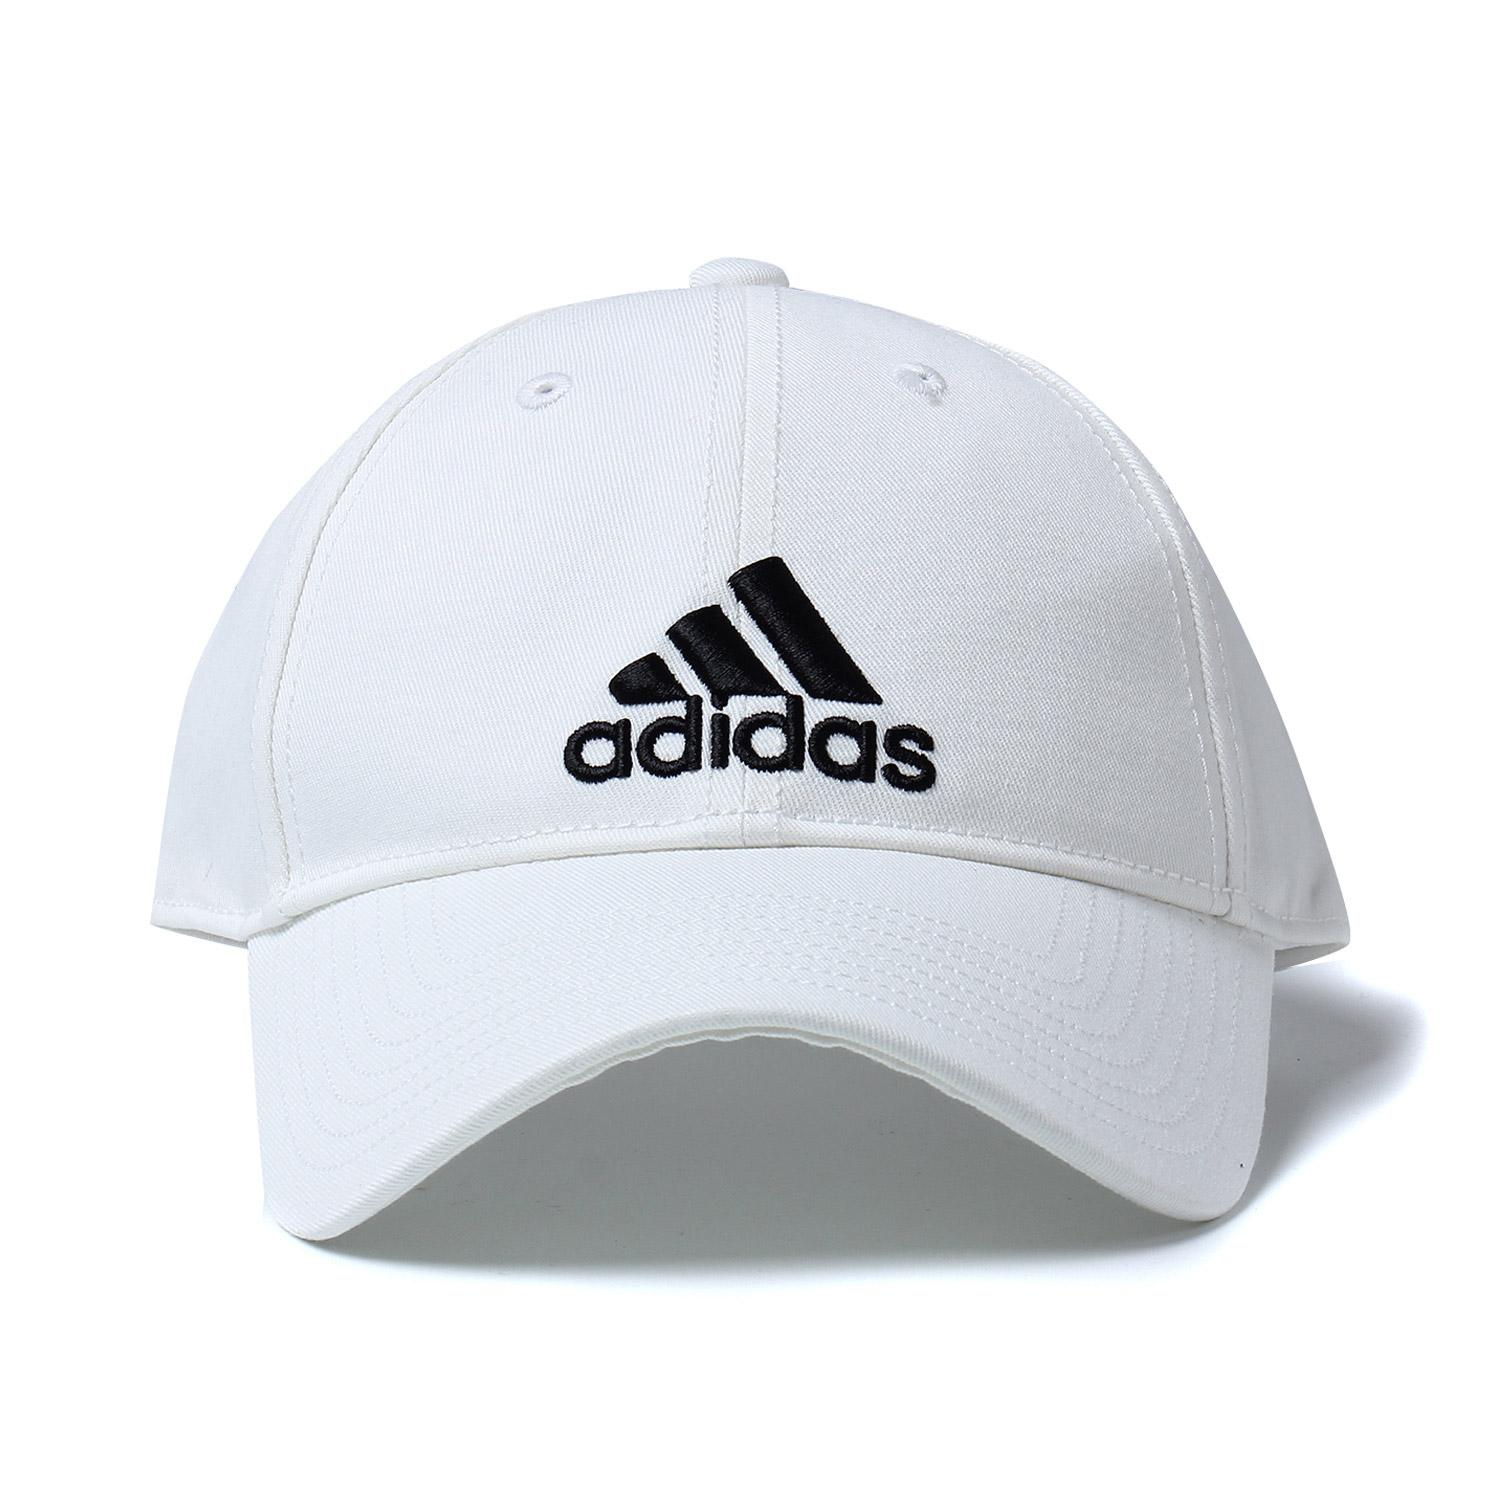 02b5a55e15c Adidas Men s And Women s Hat 2019 New Style Casual Sports of Accessories  S98151